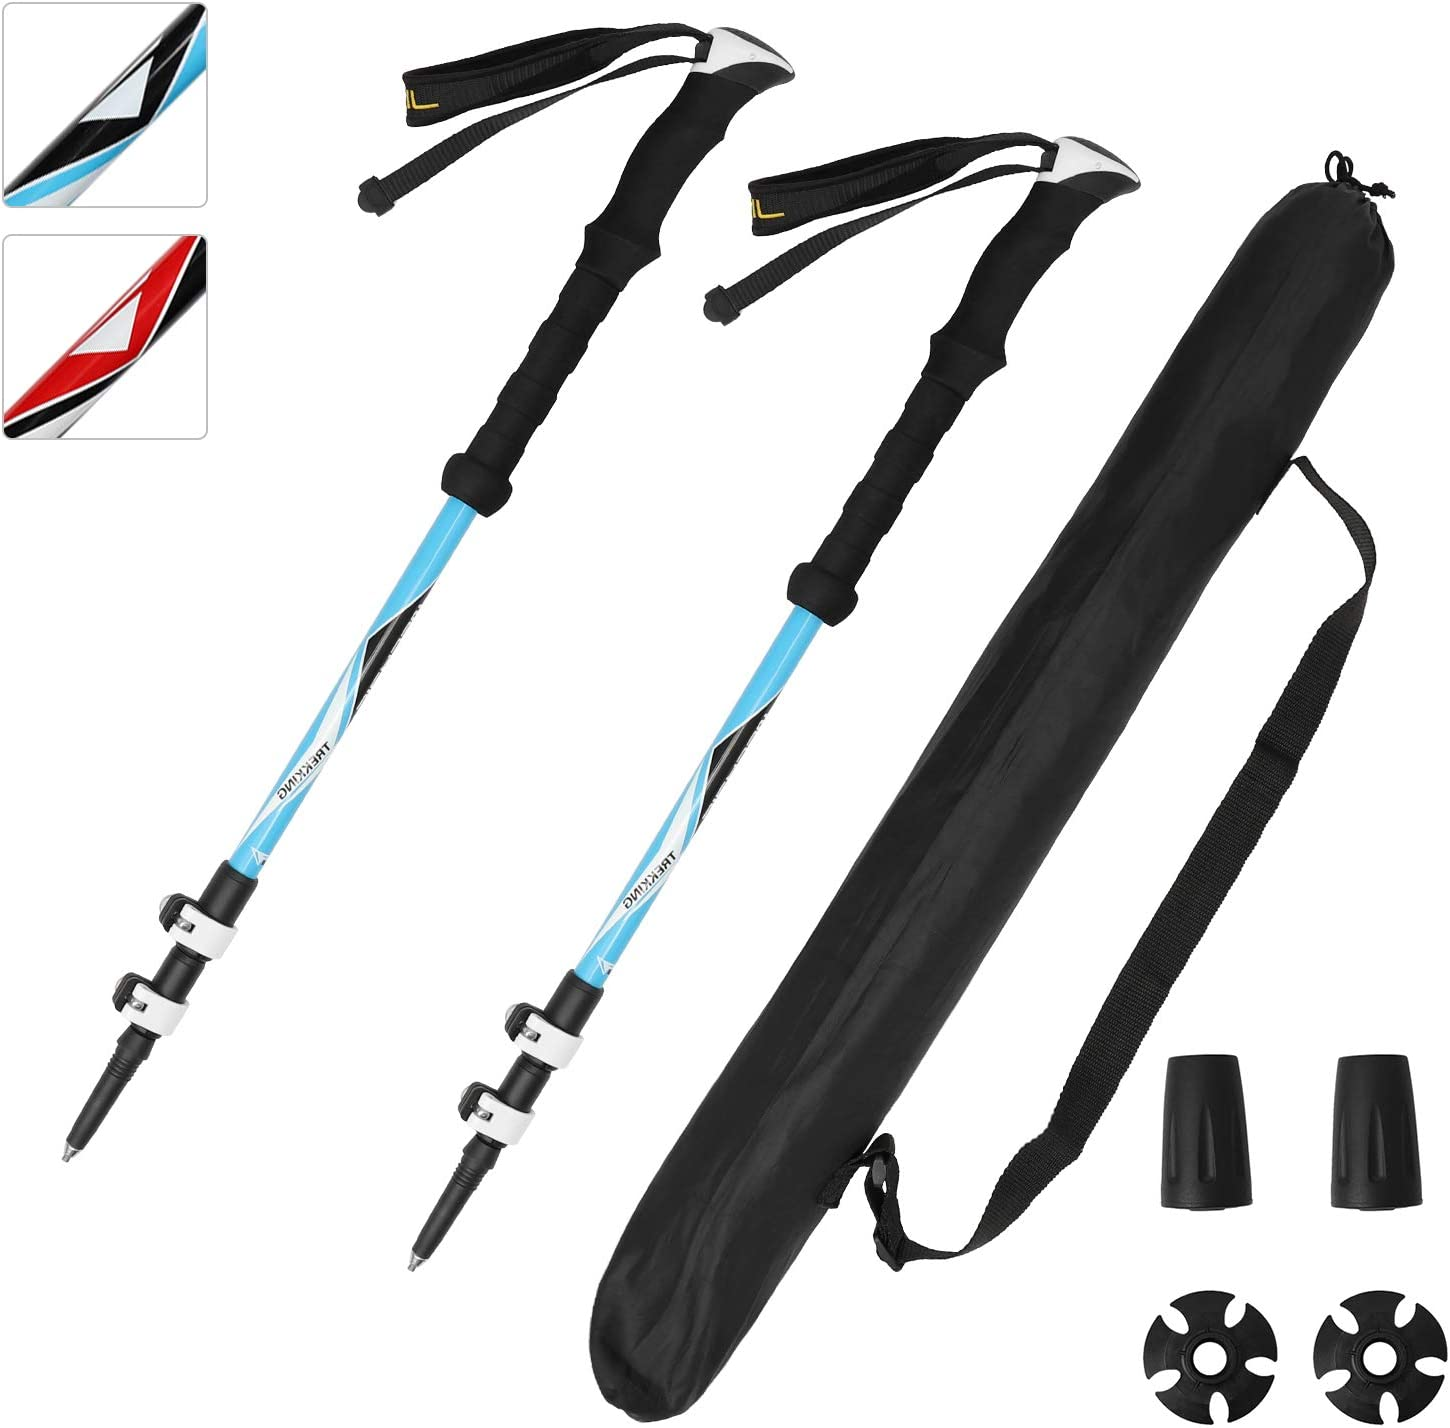 Premium Trekking Poles 100 Carbon Fiber 2 Pieces Collapsible Lightweight,Hiking Sticks Anti Shock with EVA Foam Handle and Quick Lock for Women Men,Nordic Walking Poles Blue Red for Hiking Mountain